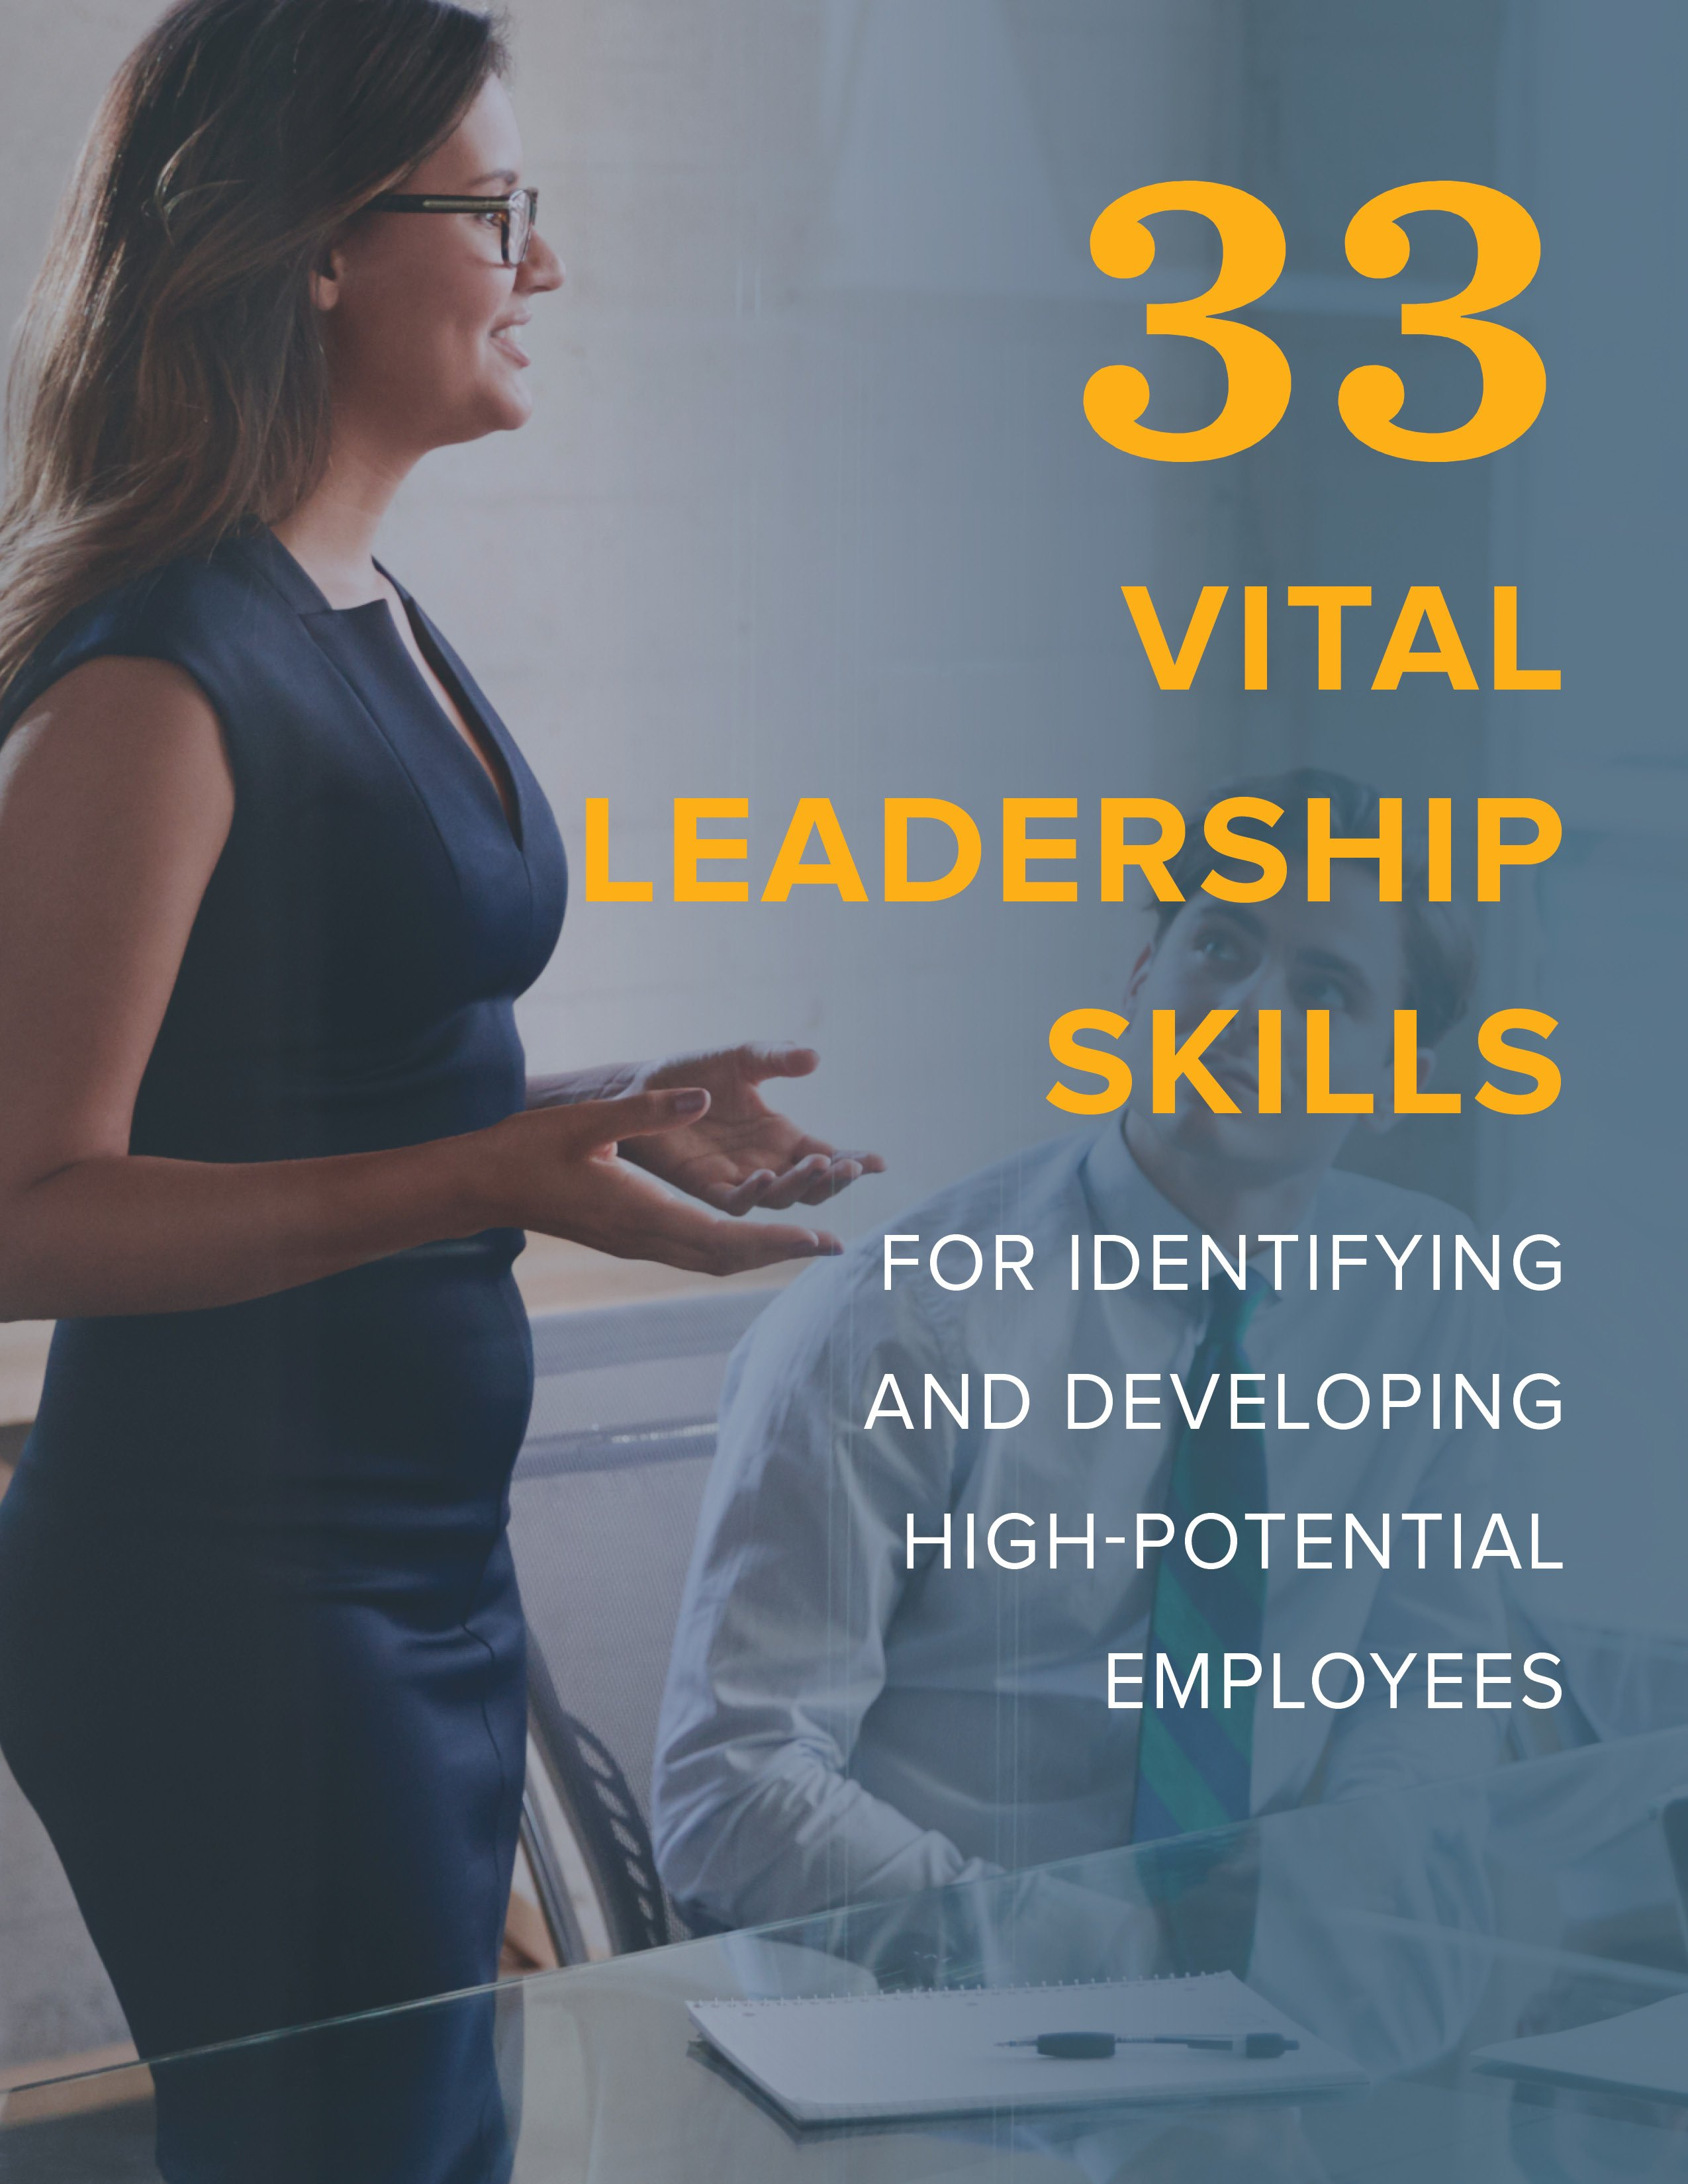 NEOGOV 33 Vital Leadership Skills for Identifying and Developing High-Potential Employees